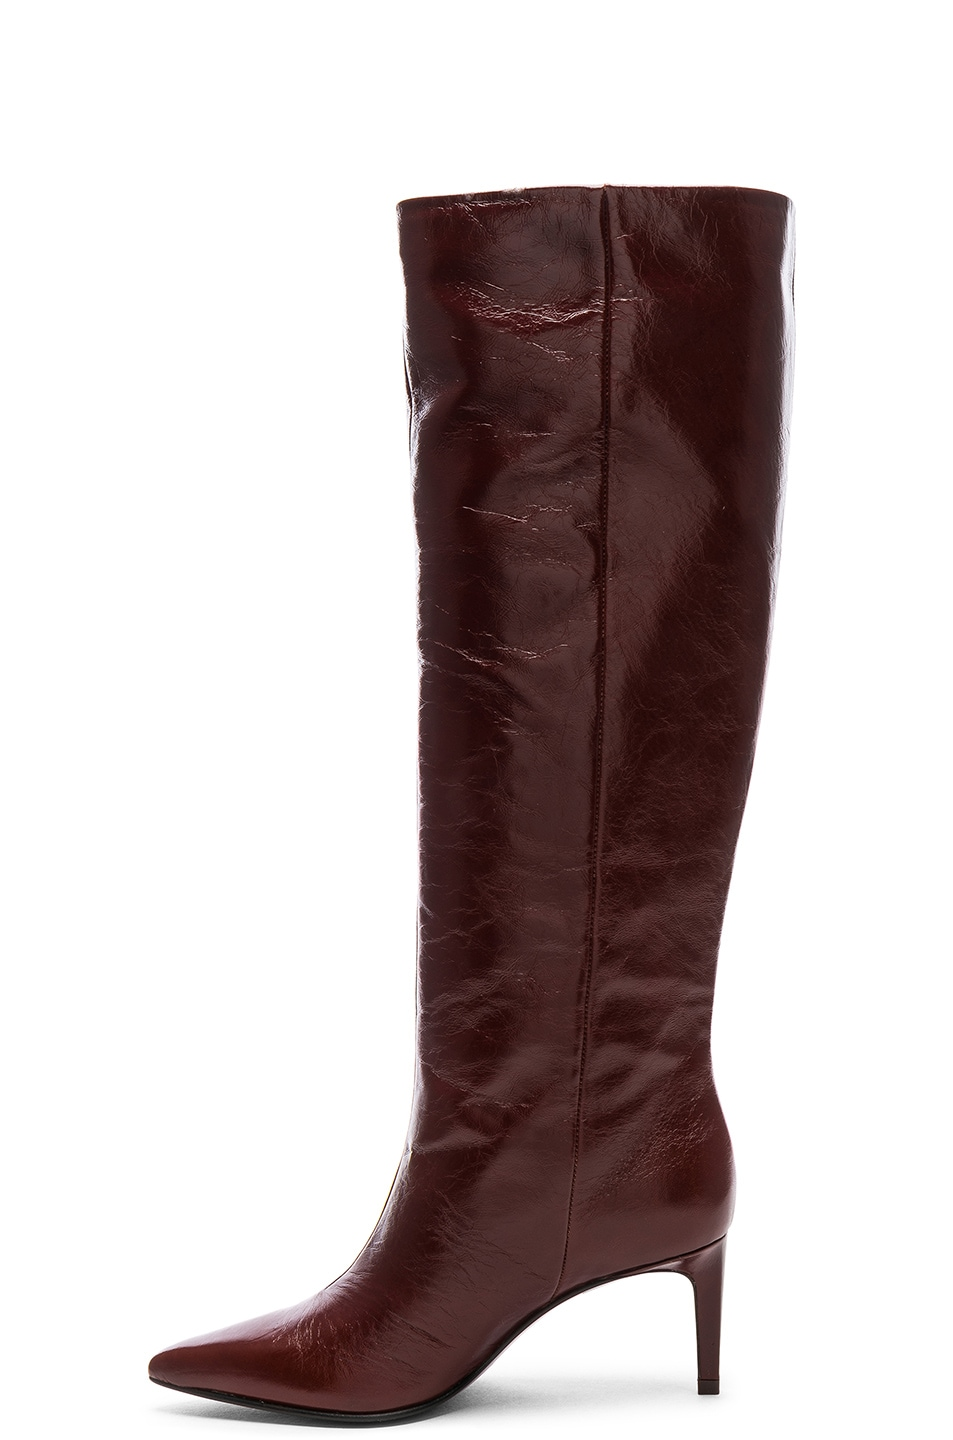 4029a2081e6 Image 5 of Rag   Bone Leather Beha Knee High Boots in Mahogany